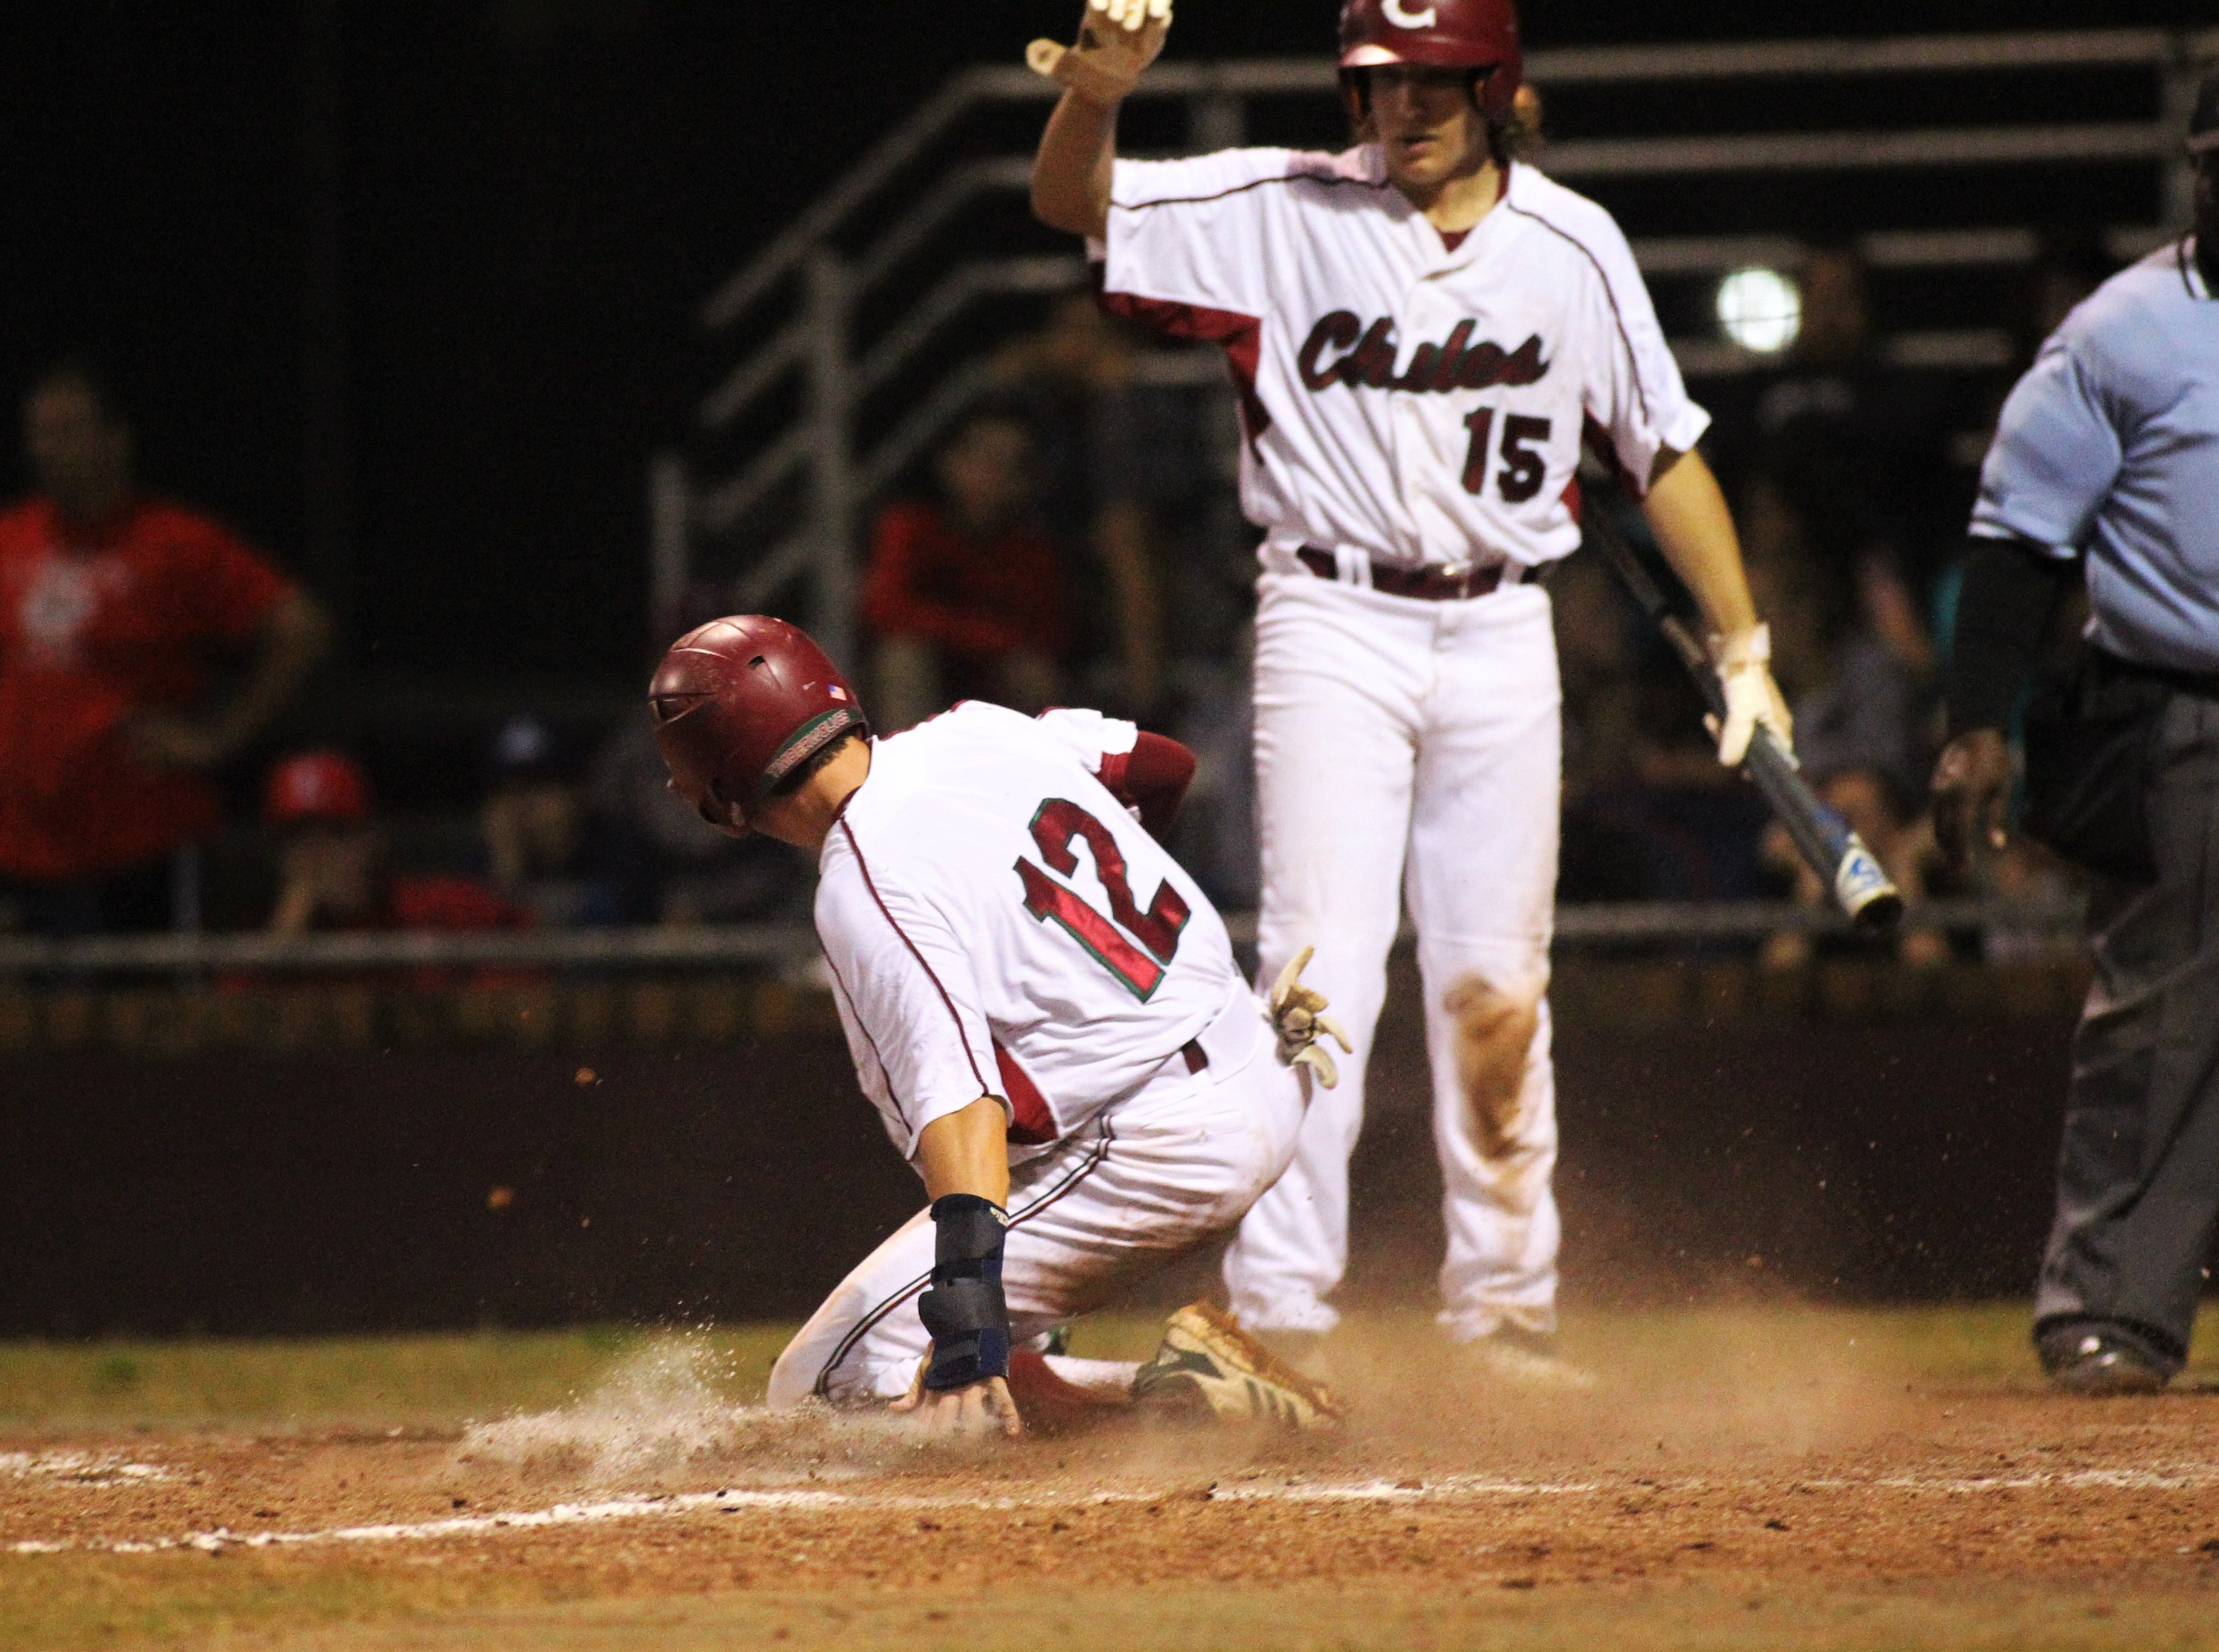 Chiles freshman Jaxson West slides in safely at home after a wild pitch as Chiles won an 11-6 home game against Leon on Friday, April 5, 2019, to force a season split. The Lions won 3-0 earlier in the week.